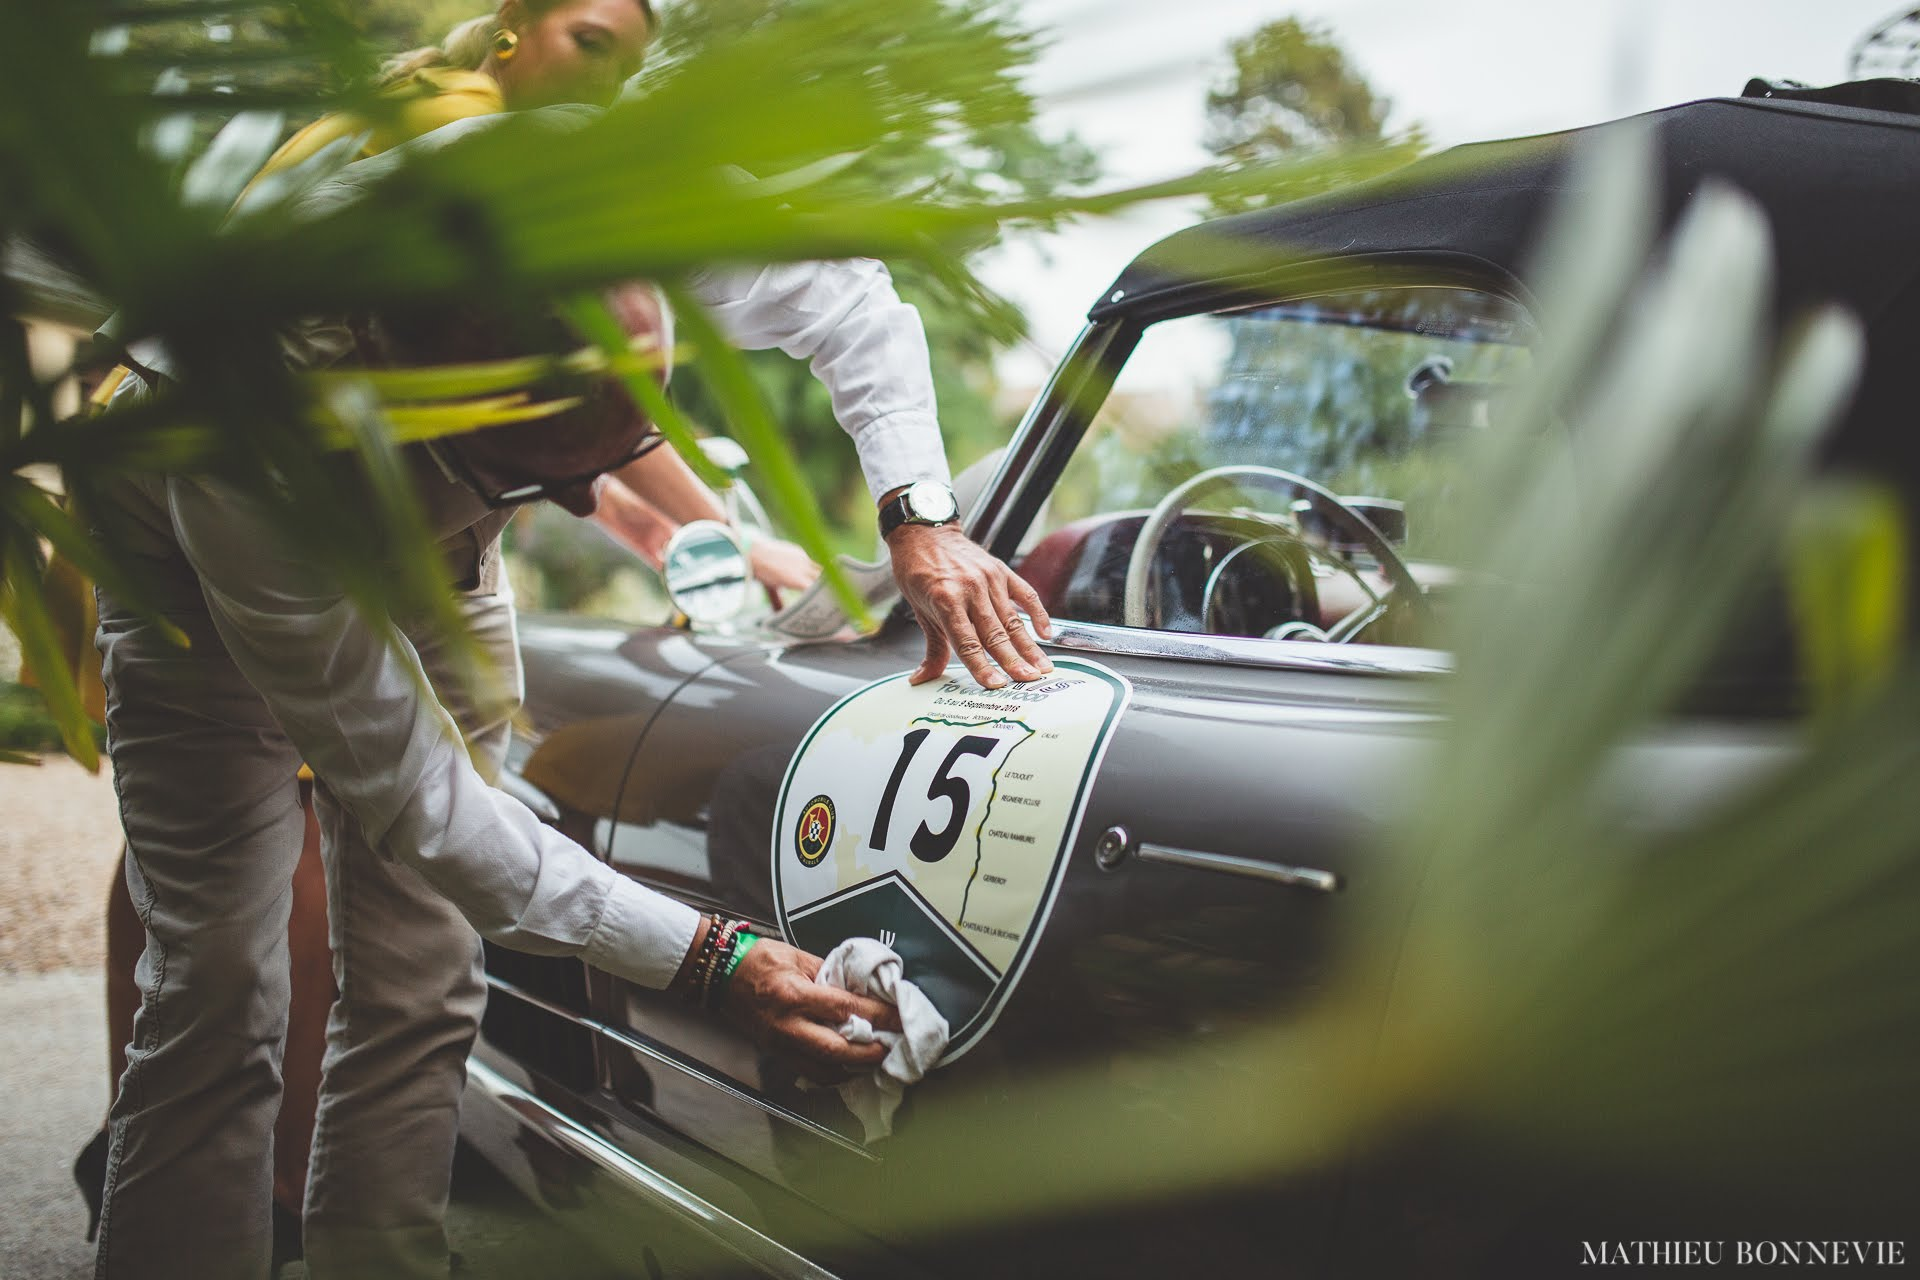 59-goodwoodrevival18-00258-copyright-Mathieu-Bonnevie-1920